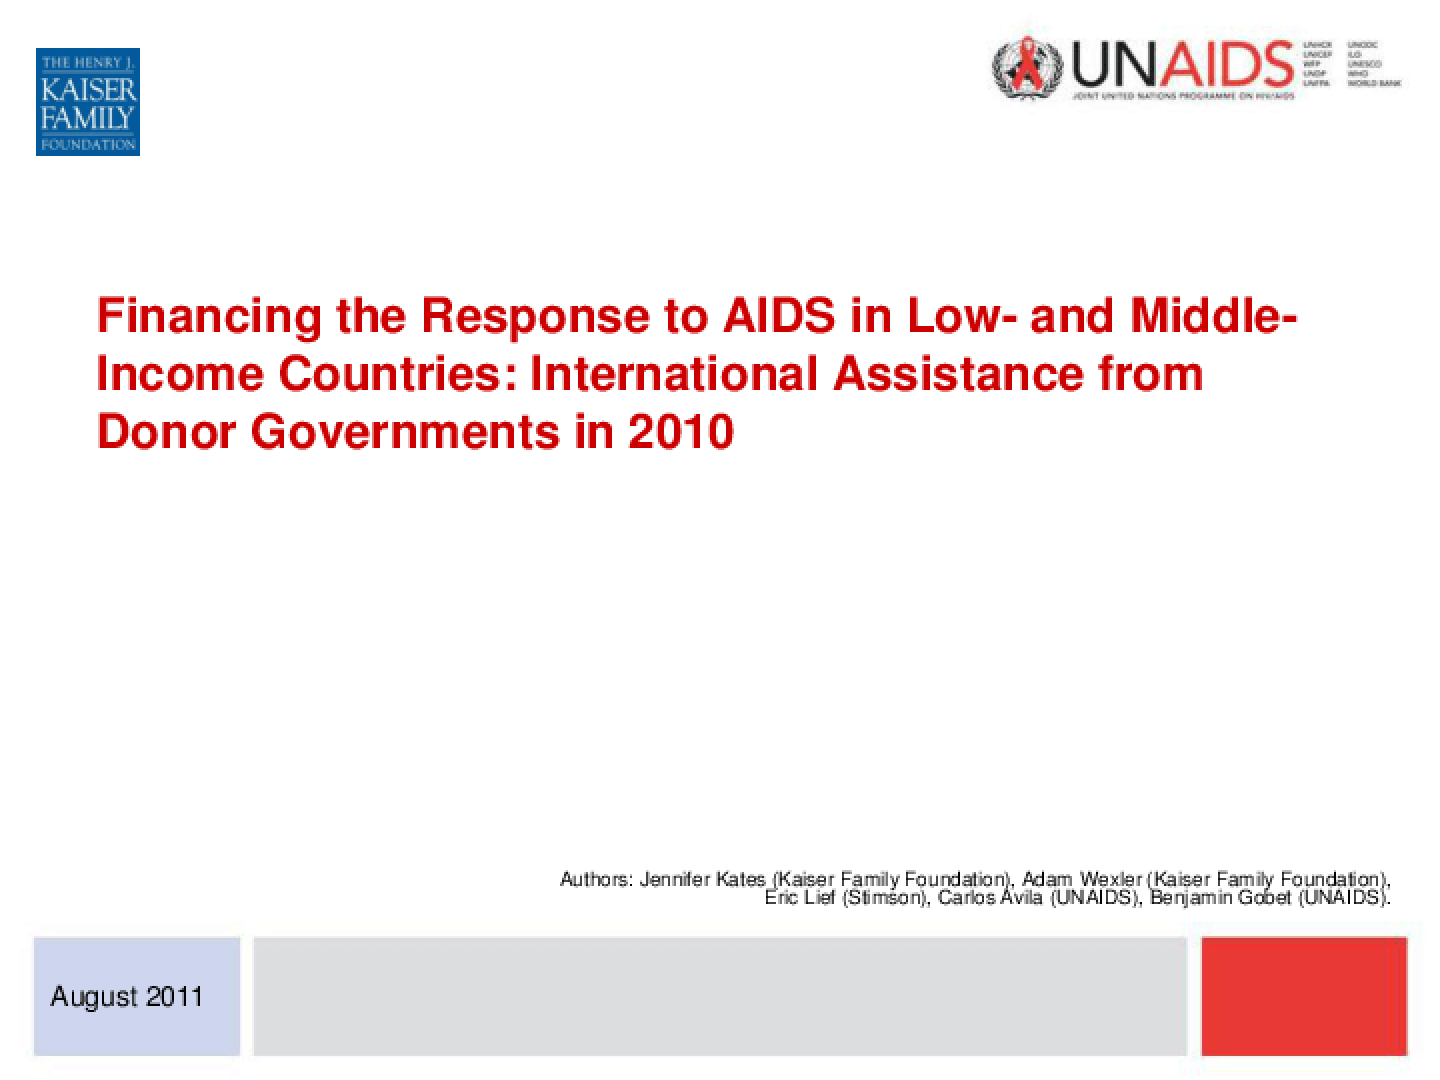 Financing the Response to AIDS in Low- and Middle-Income Countries: International Assistance From Donor Governments in 2010